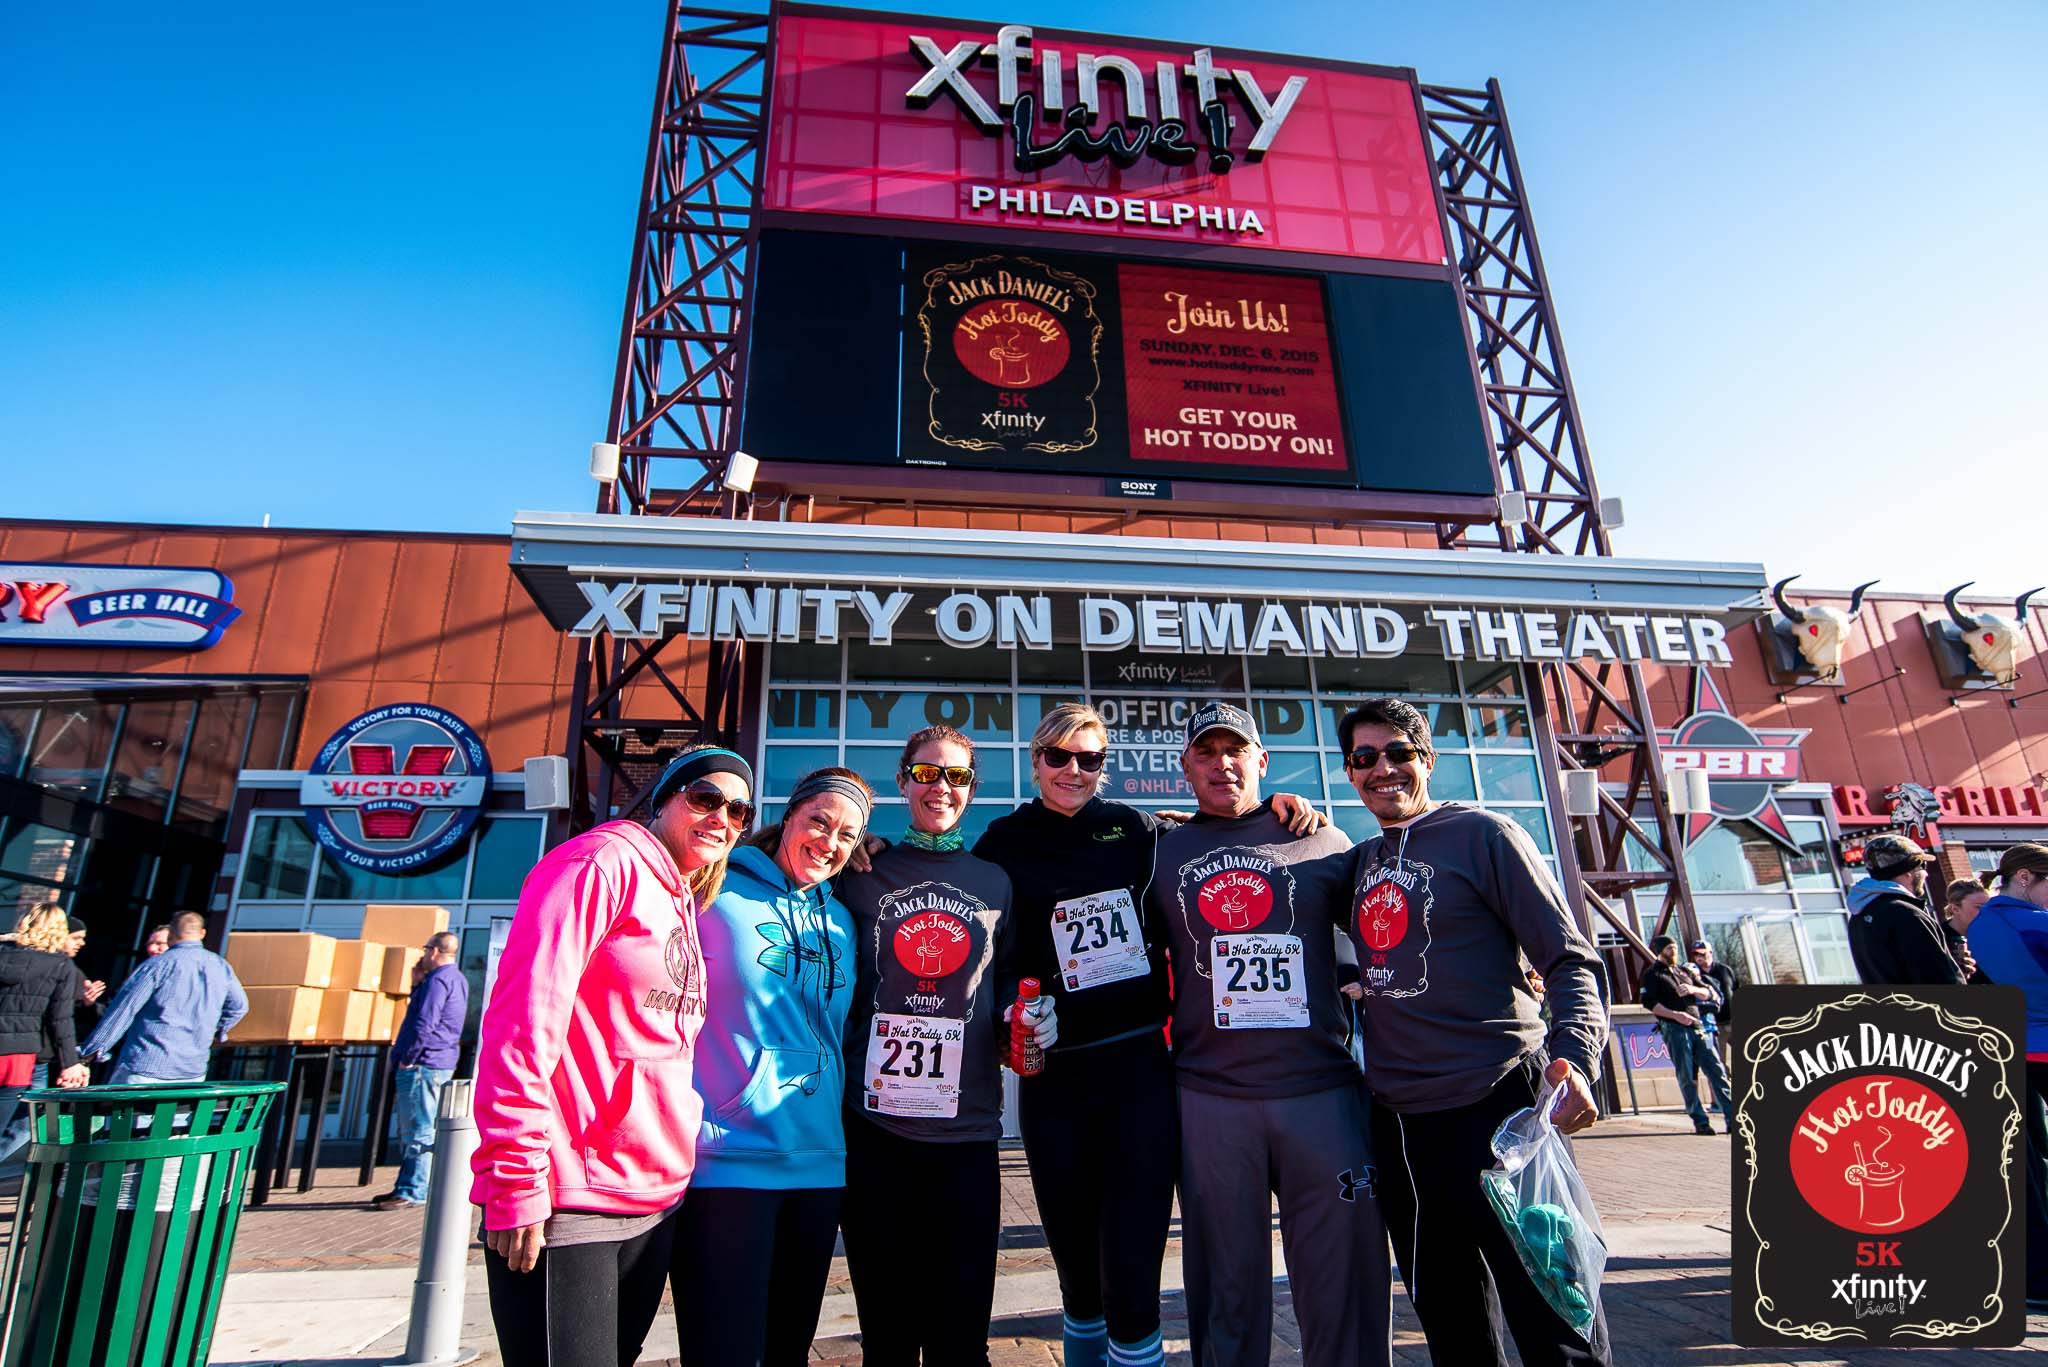 Image result for xfinity live hot toddy 5k